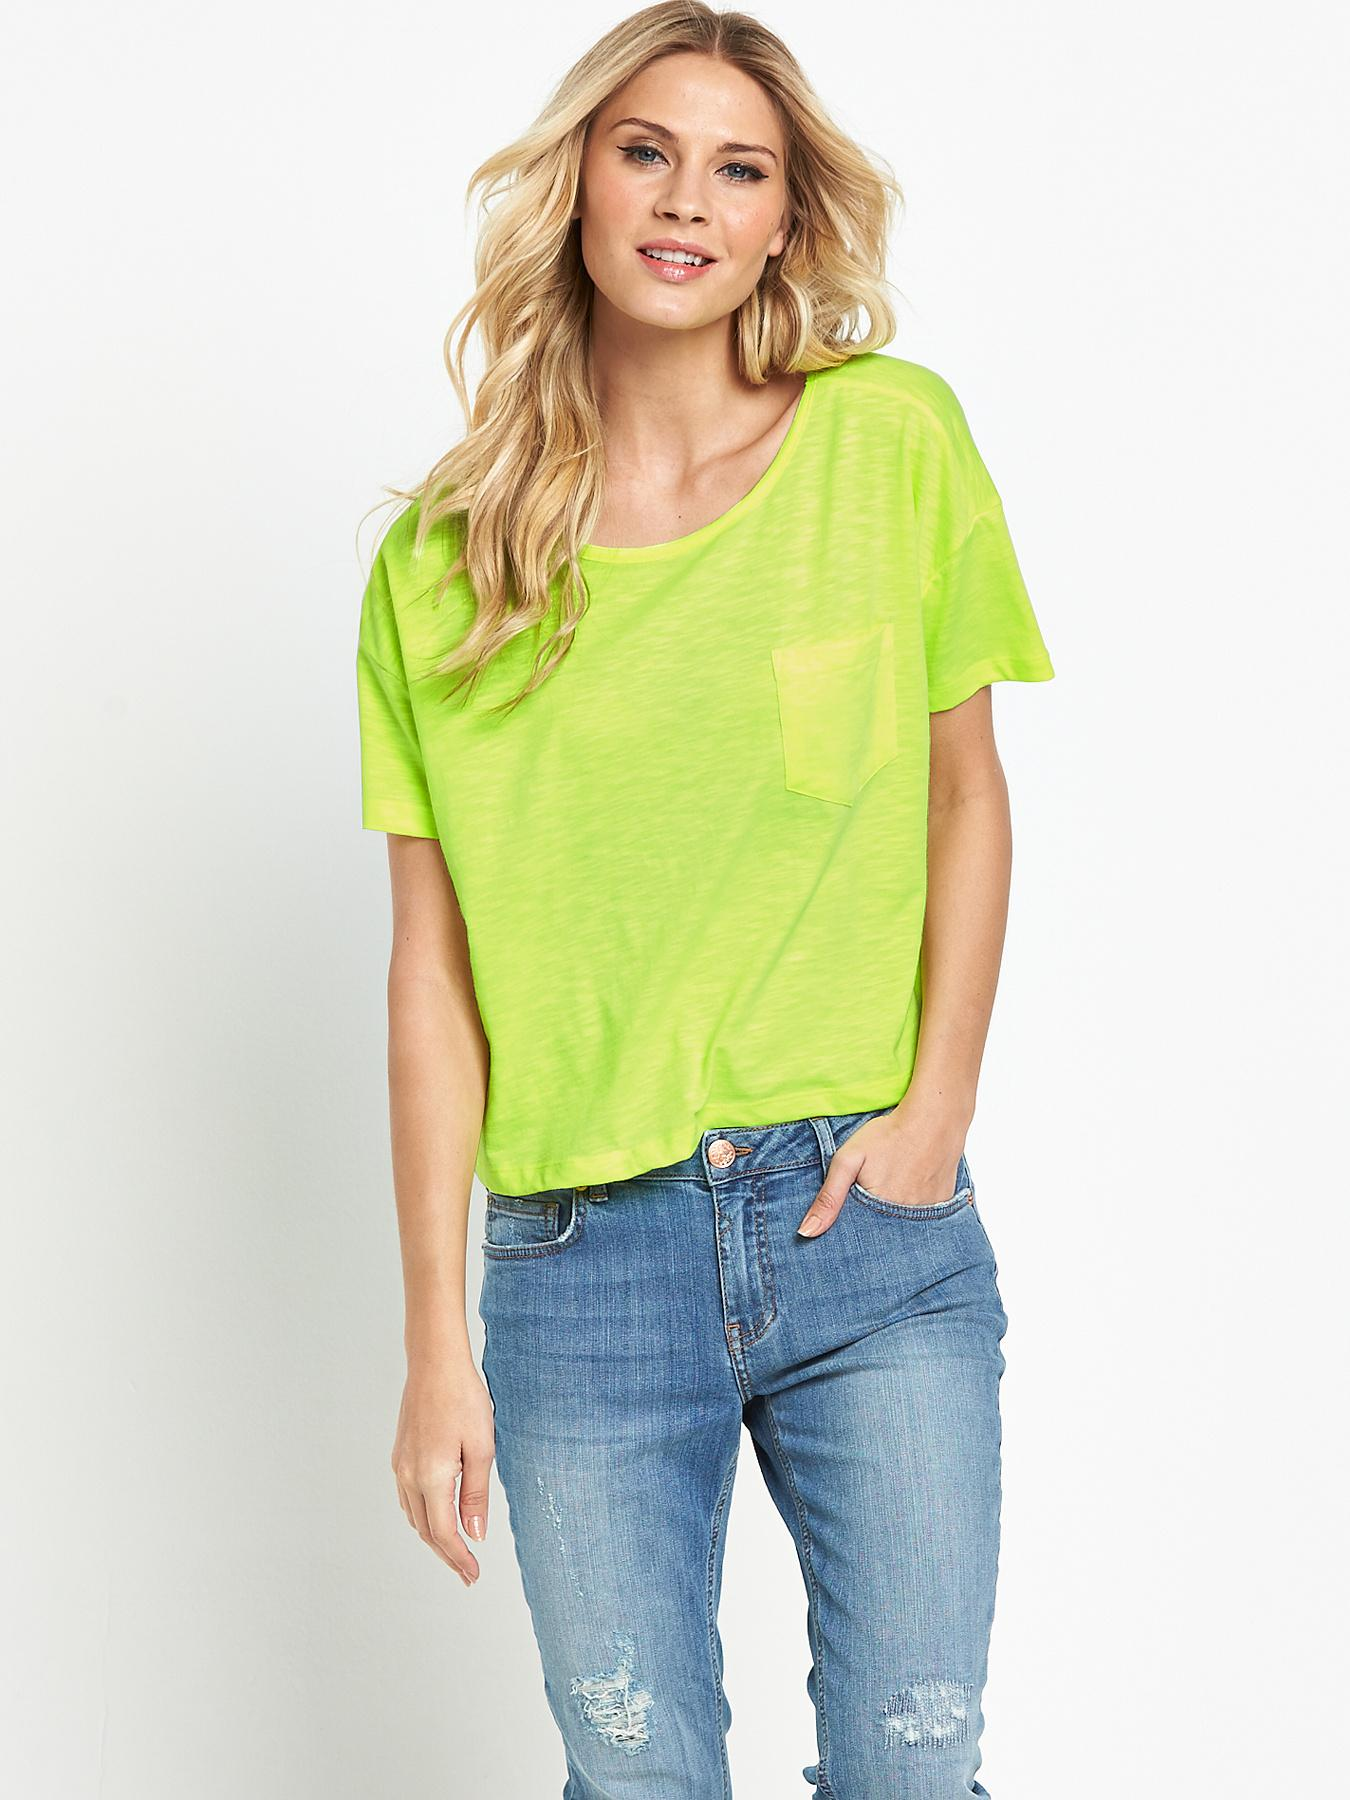 Boxy T-shirt, Pink,Black,White,Neon at Littlewoods